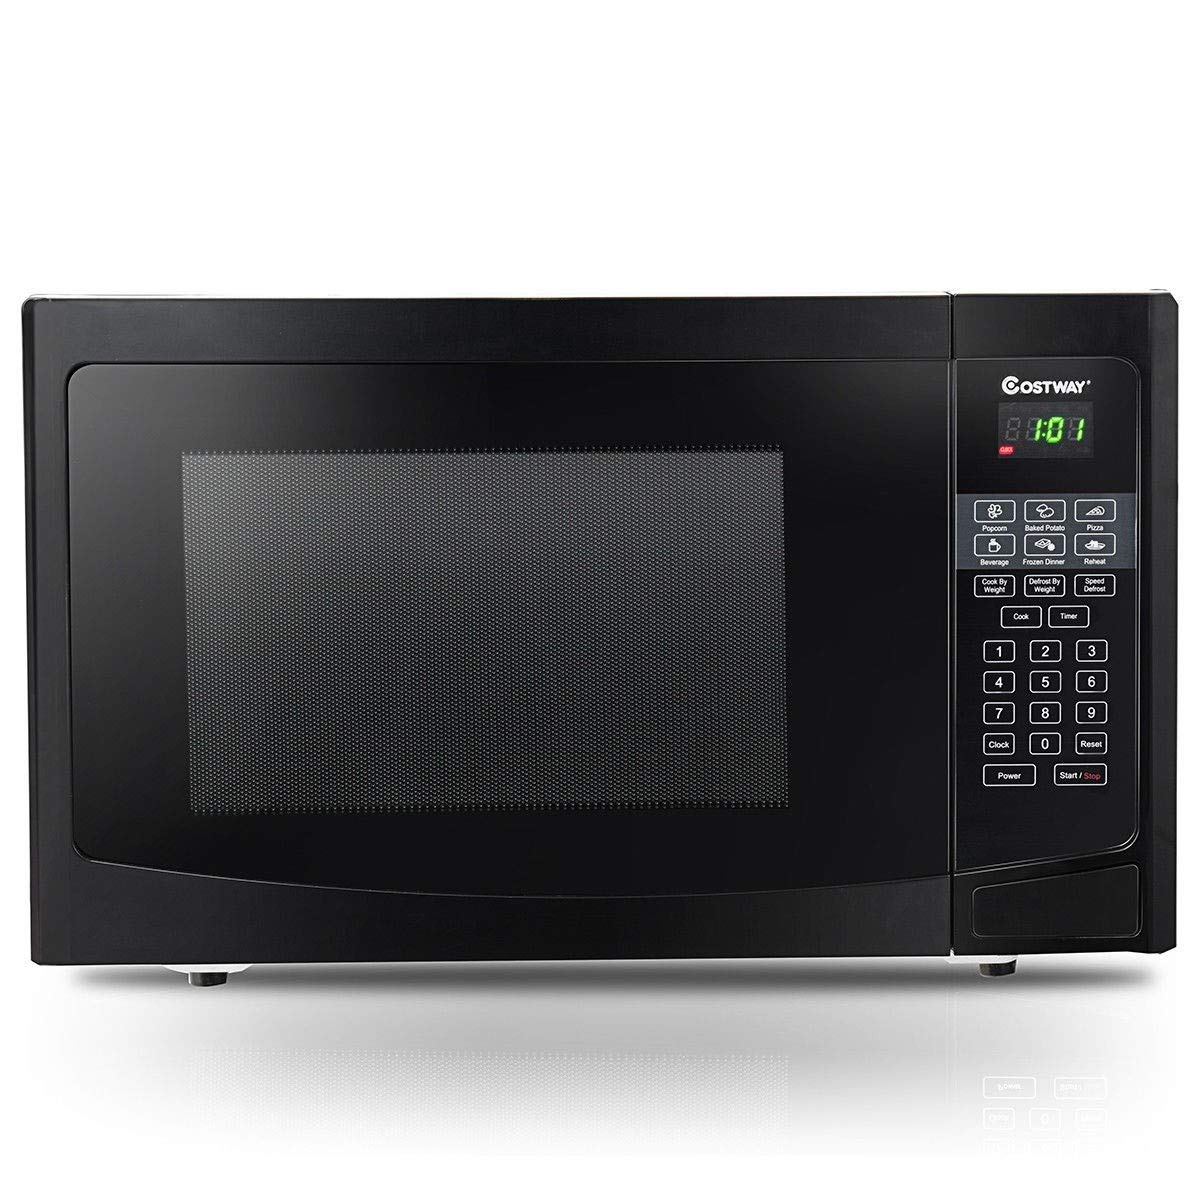 CHOOSEandBUY 1.1 cu ft Programmable Microwave Oven 1000W LED Display New Perfect Beautiful Classic Elegant Useful